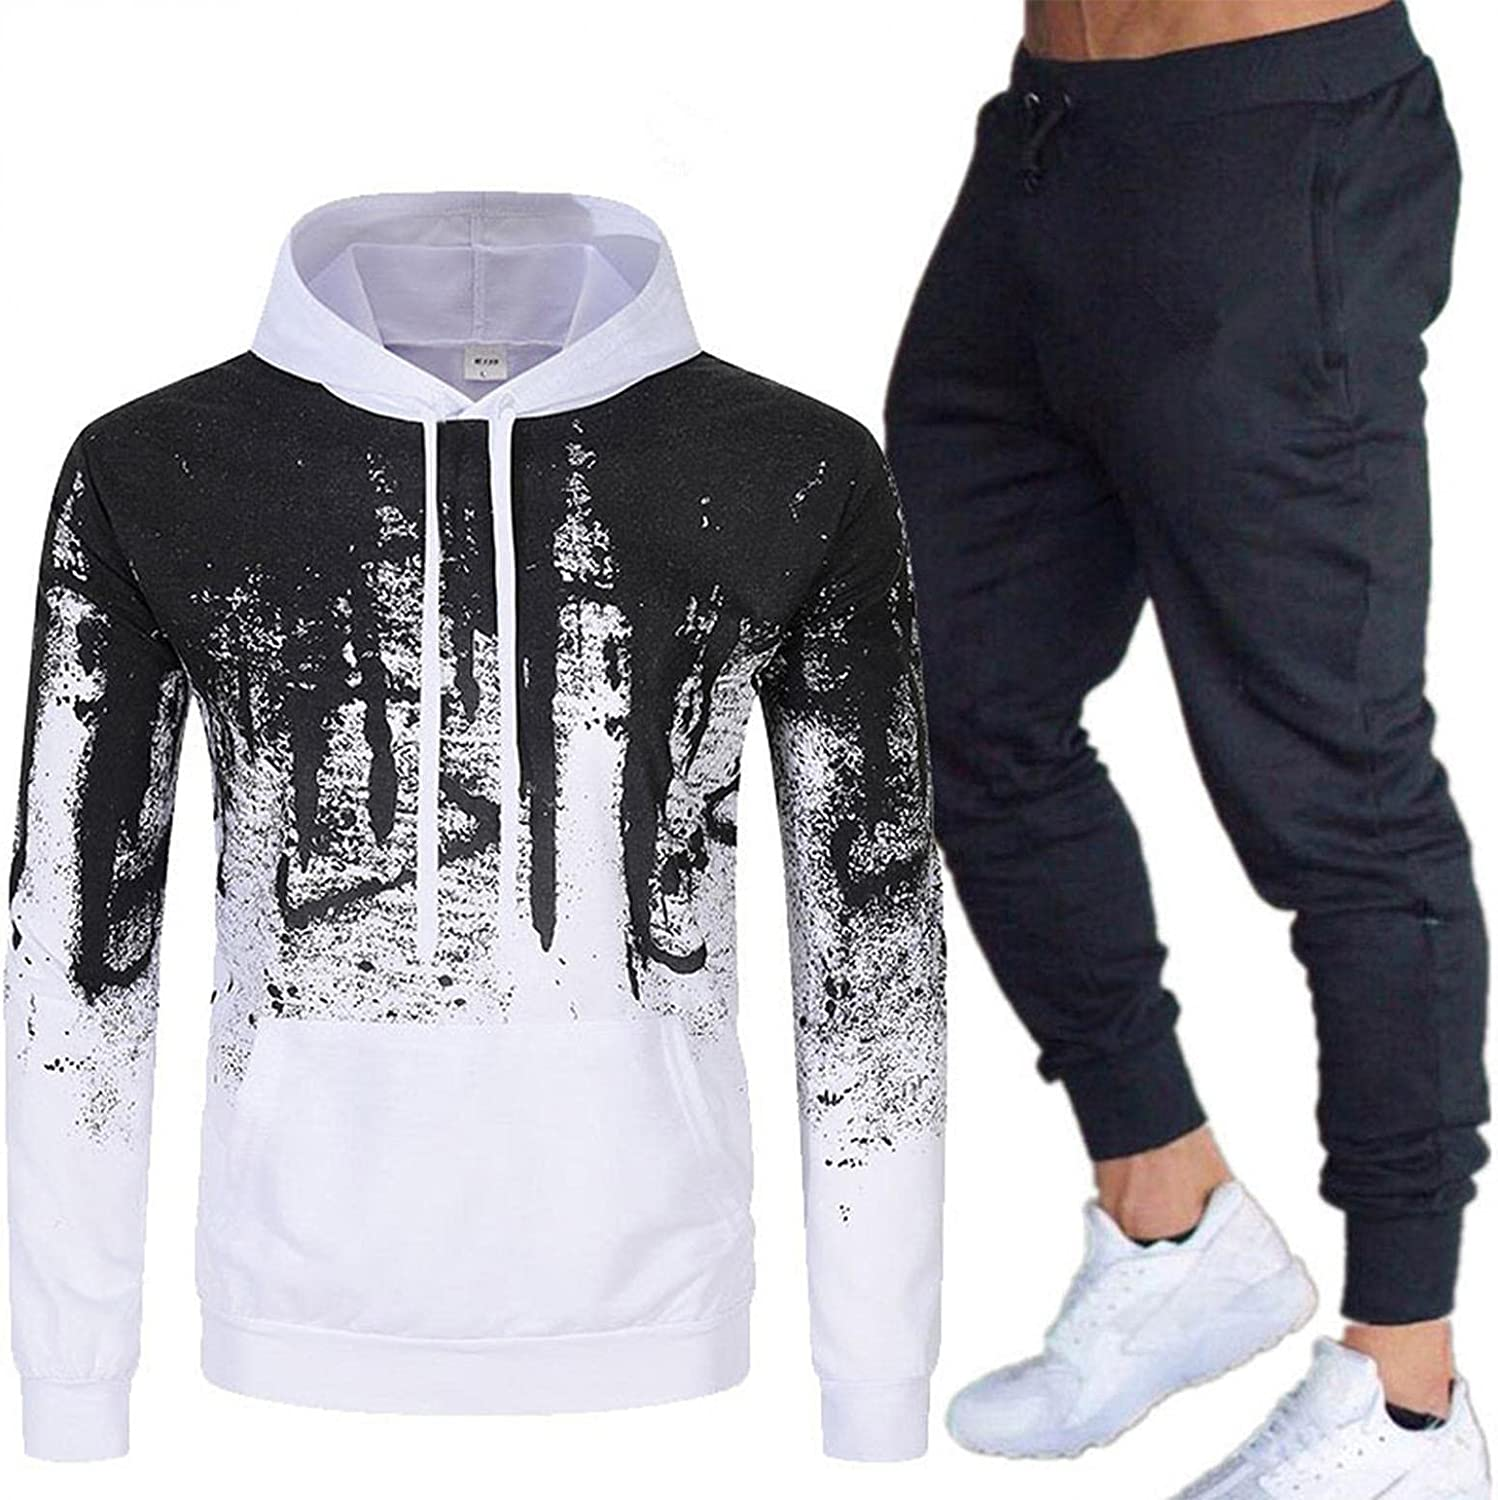 XUNFUN Men's Casual Relaxed Fit Tracksuits 2 Piece Fashion Ink Print Long Sleeve Sweatshirts Jogging Sweatpants Sports Suit